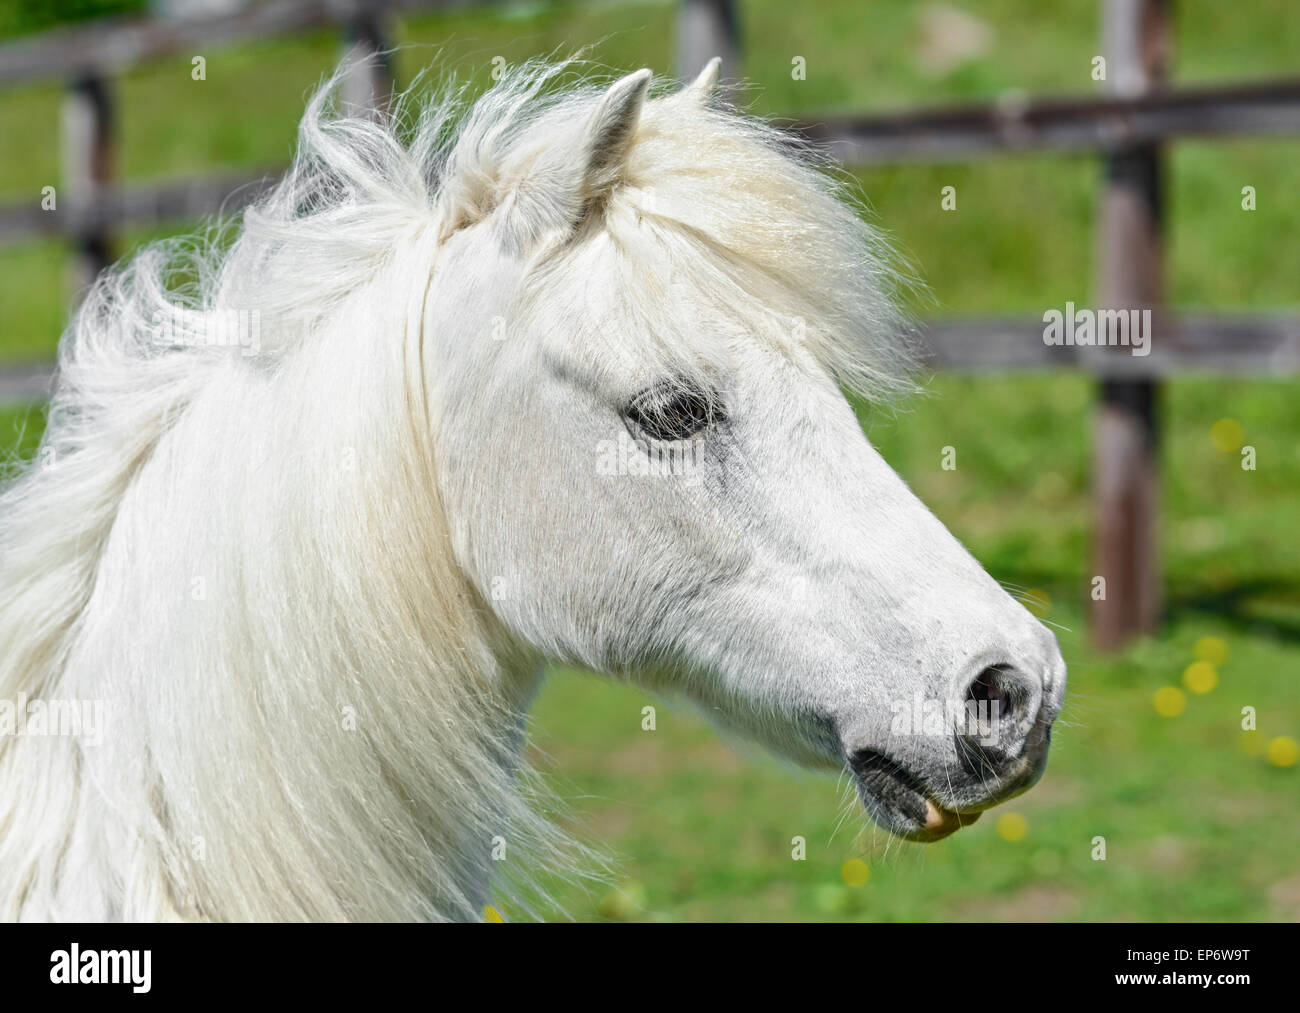 Head of a domestic white horse in a field. - Stock Image